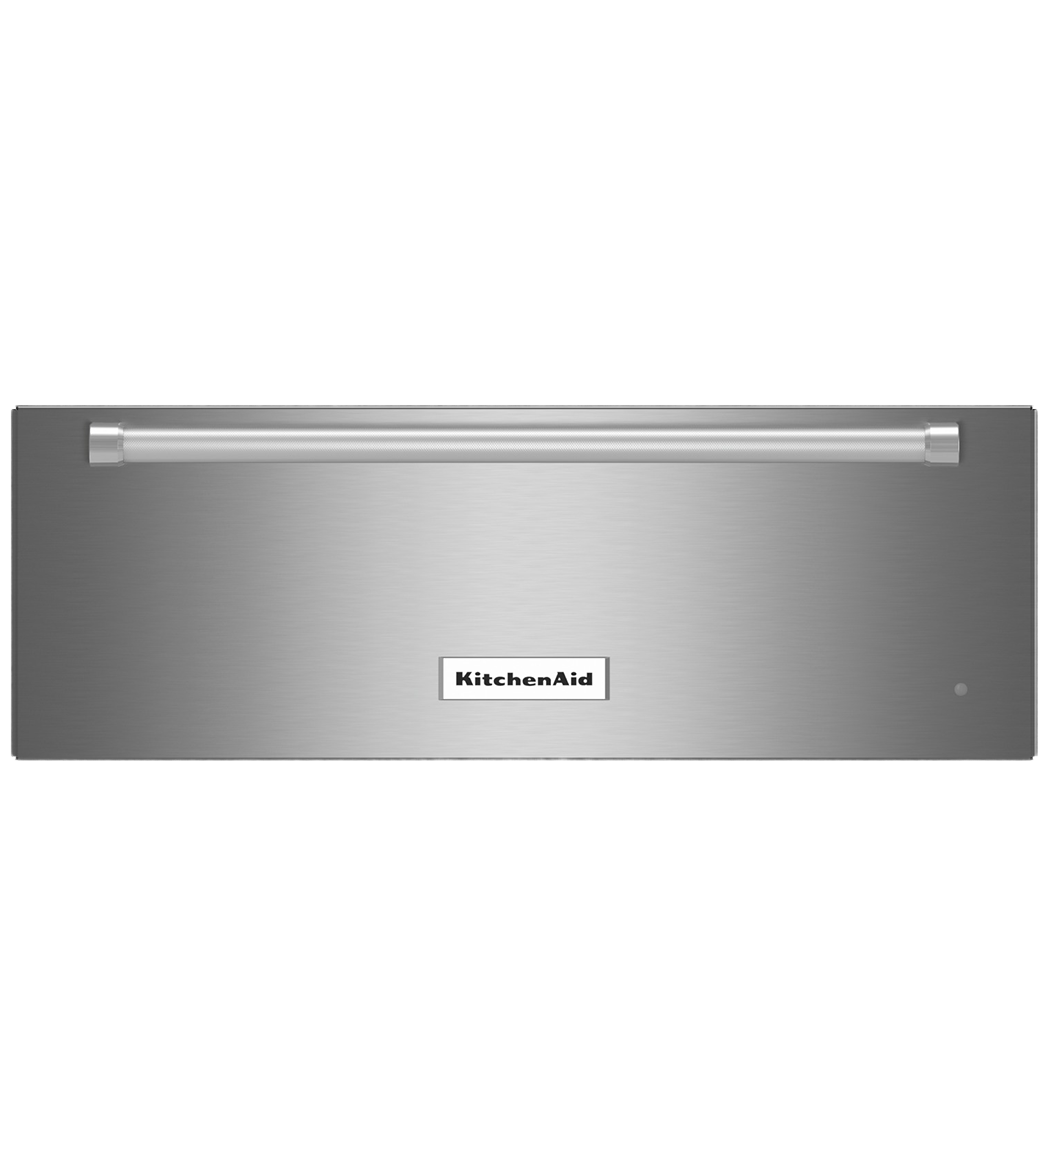 KitchenAid warming drawer in Stainless Steel color showcased by Corbeil Electro Store